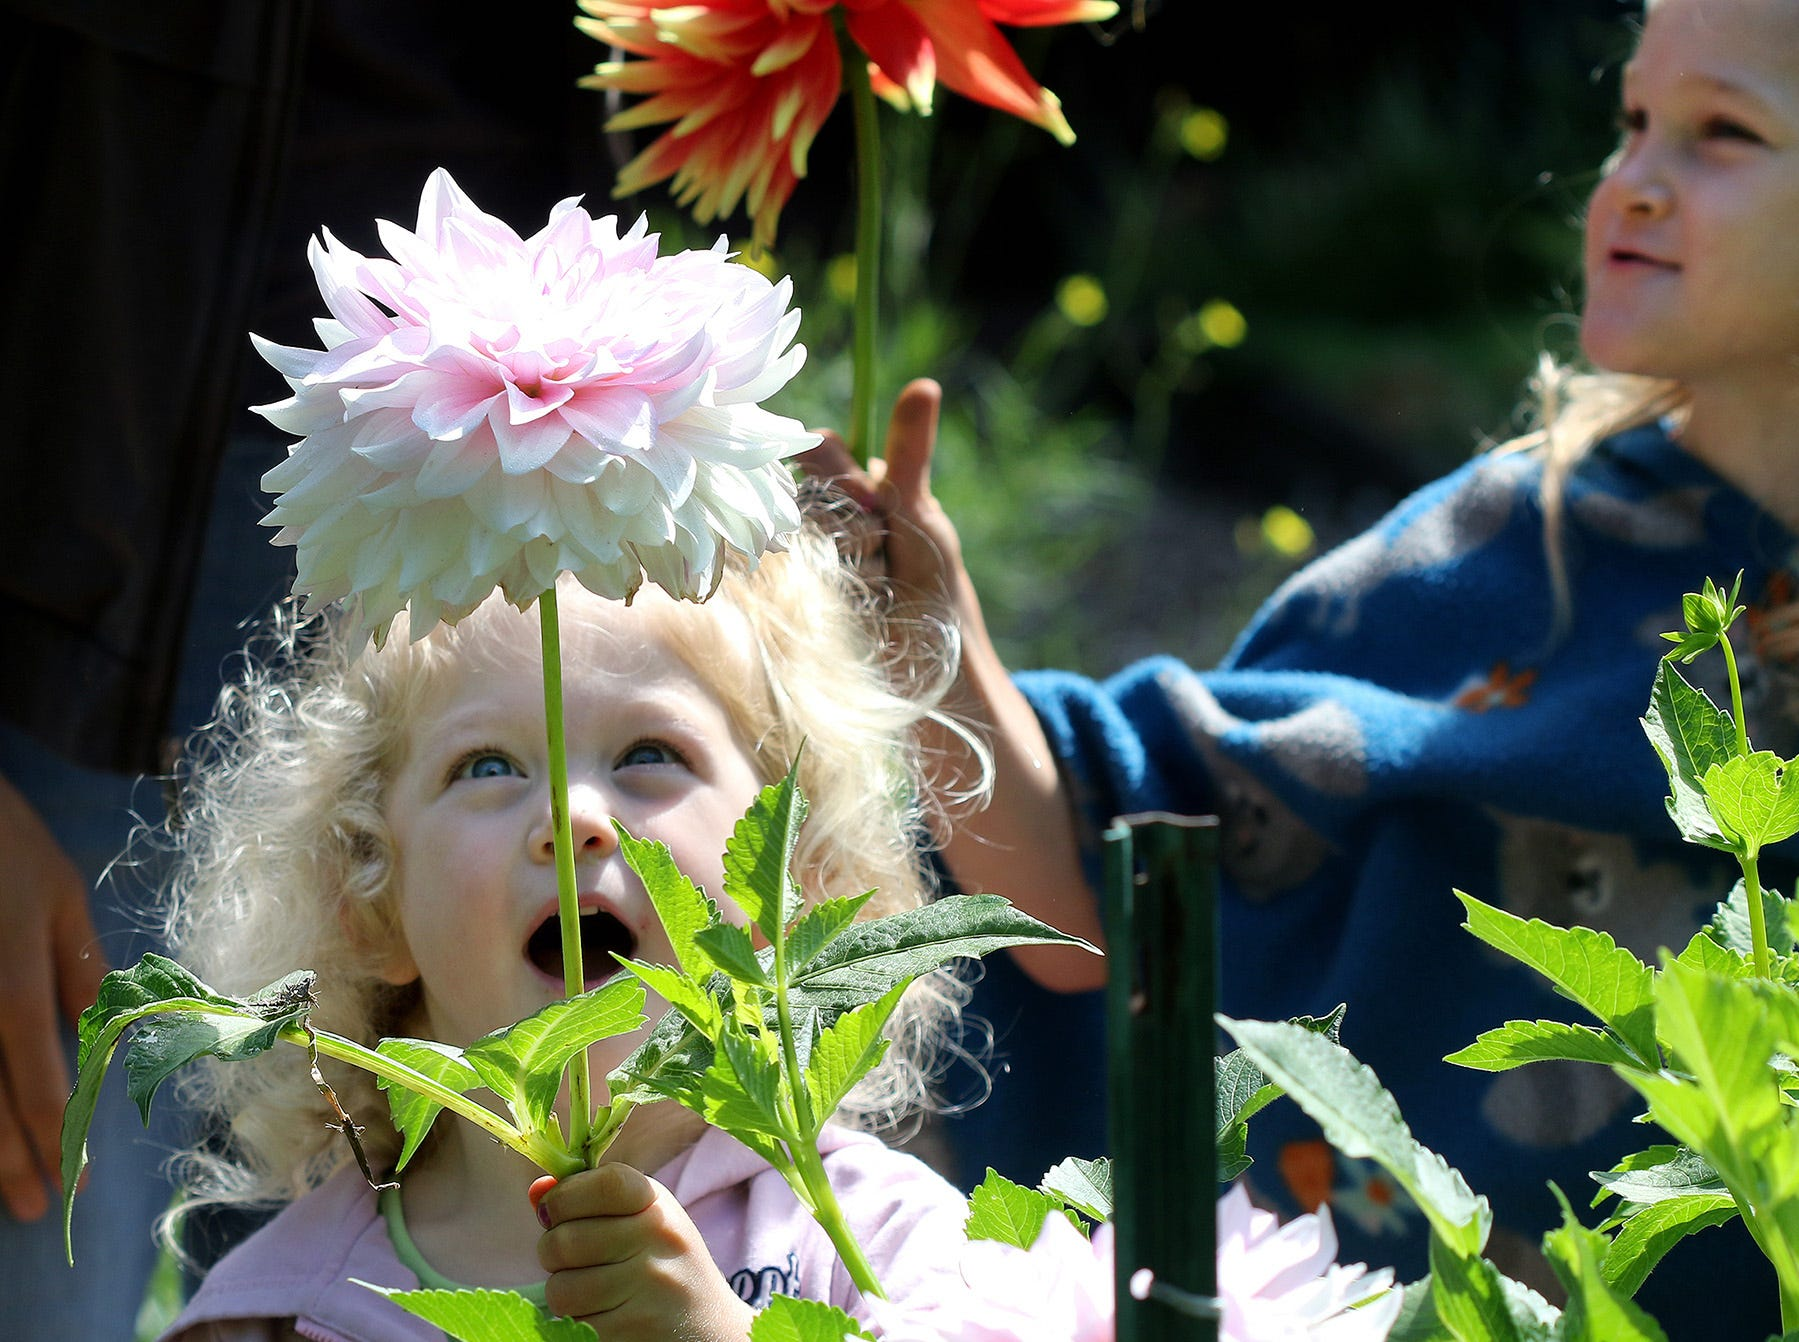 Emily Moss, 3, is amazed to hold a big dahlia at Anna Smith Garden on Saturday, August 4, 2018.